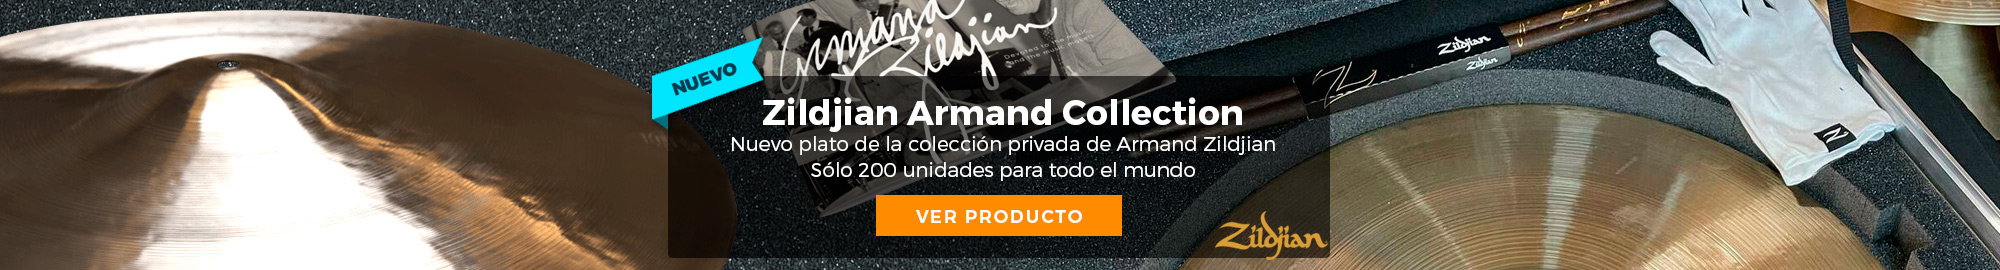 Zildjian Armand Collection